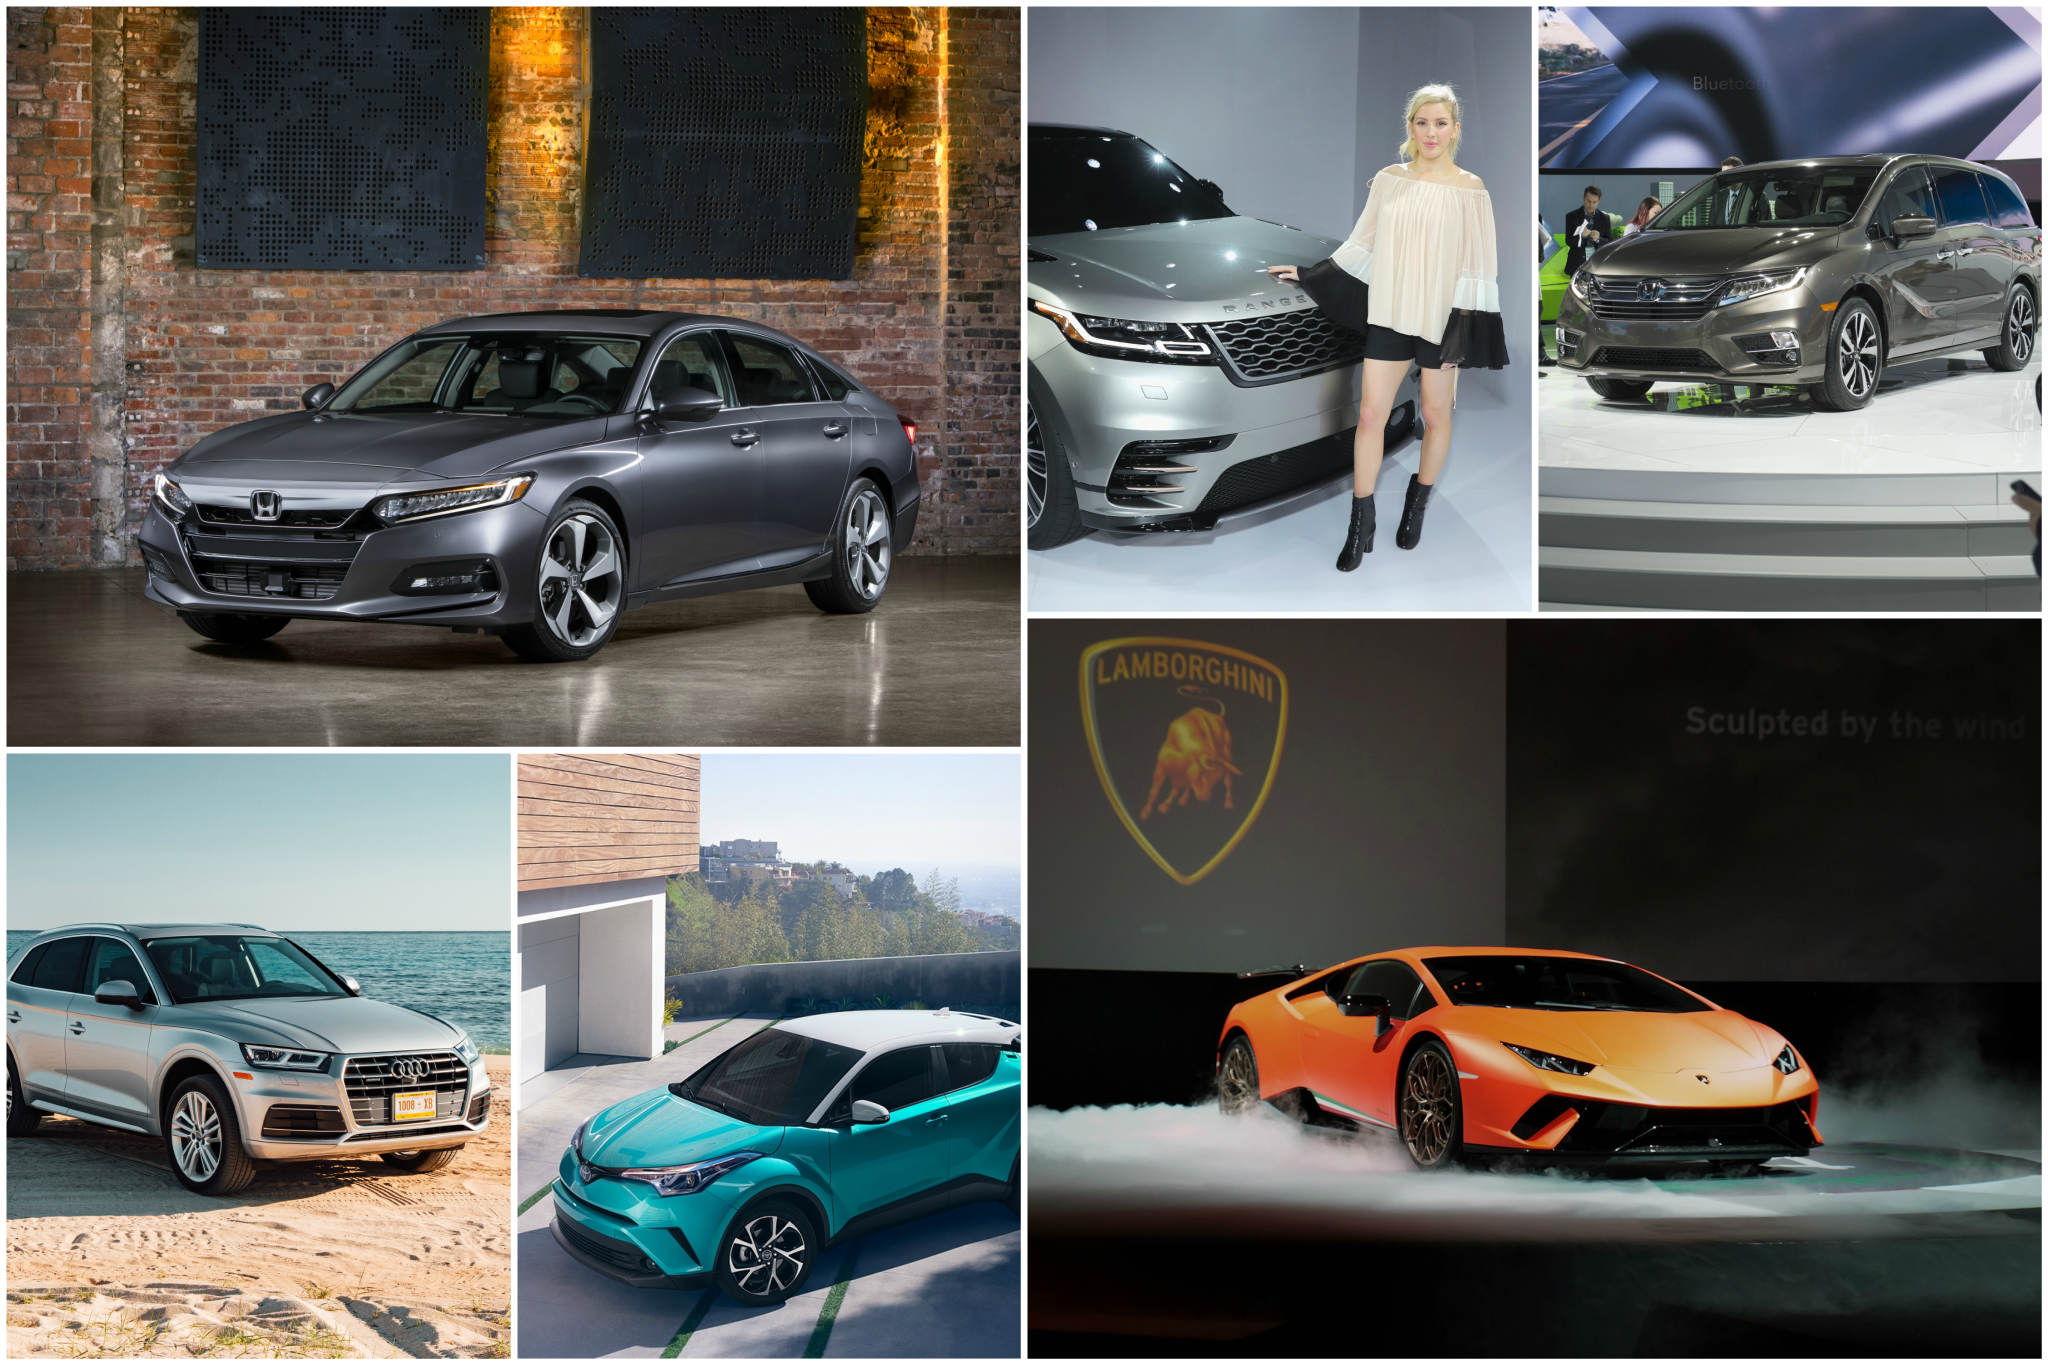 2018 car models you need to watch out for